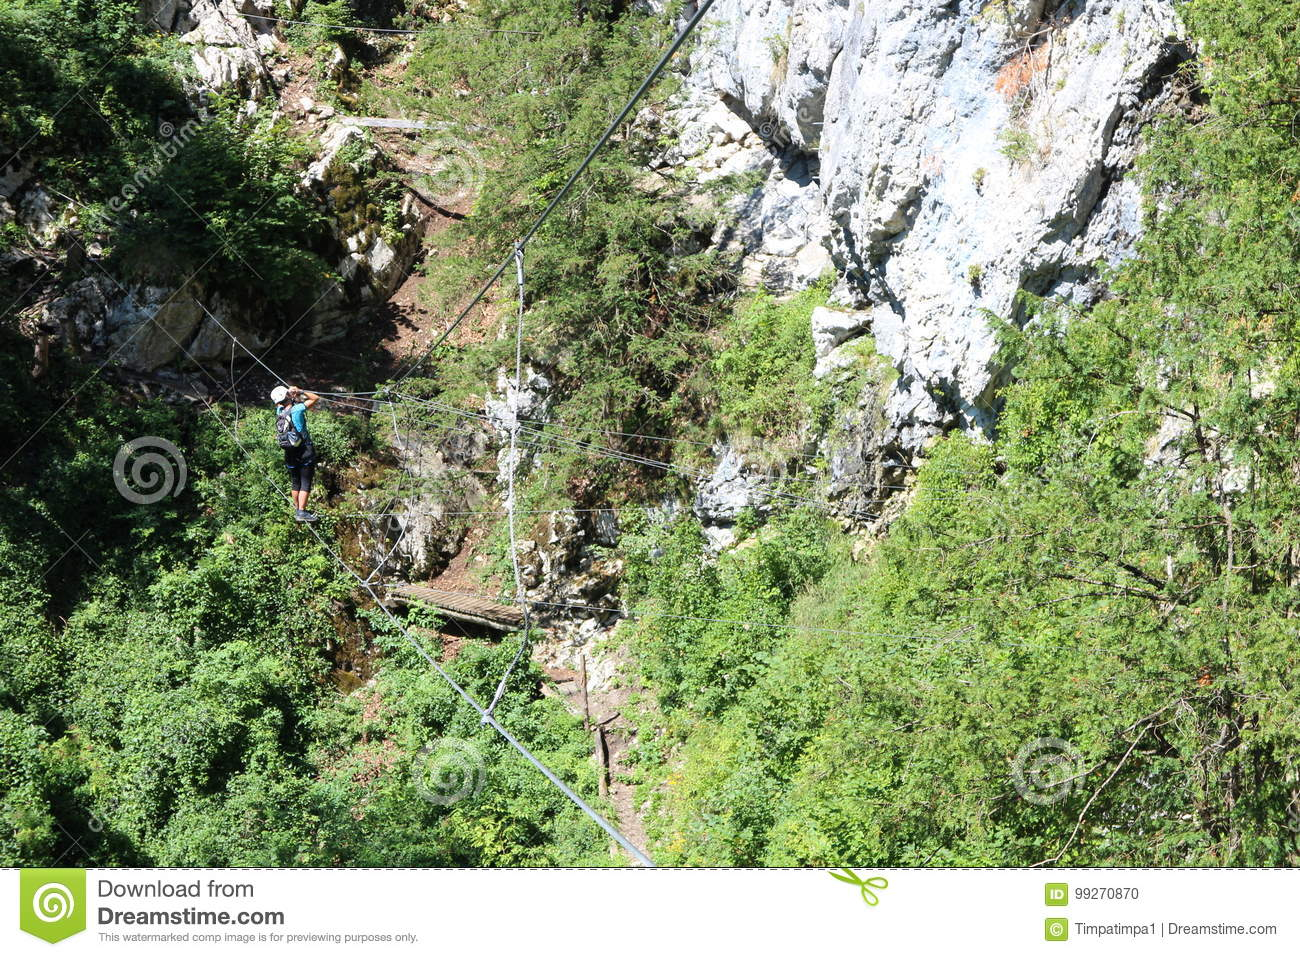 Klettersteig Clipart : Cable bridge and ladder in via ferrata trattenbacher klettersteig